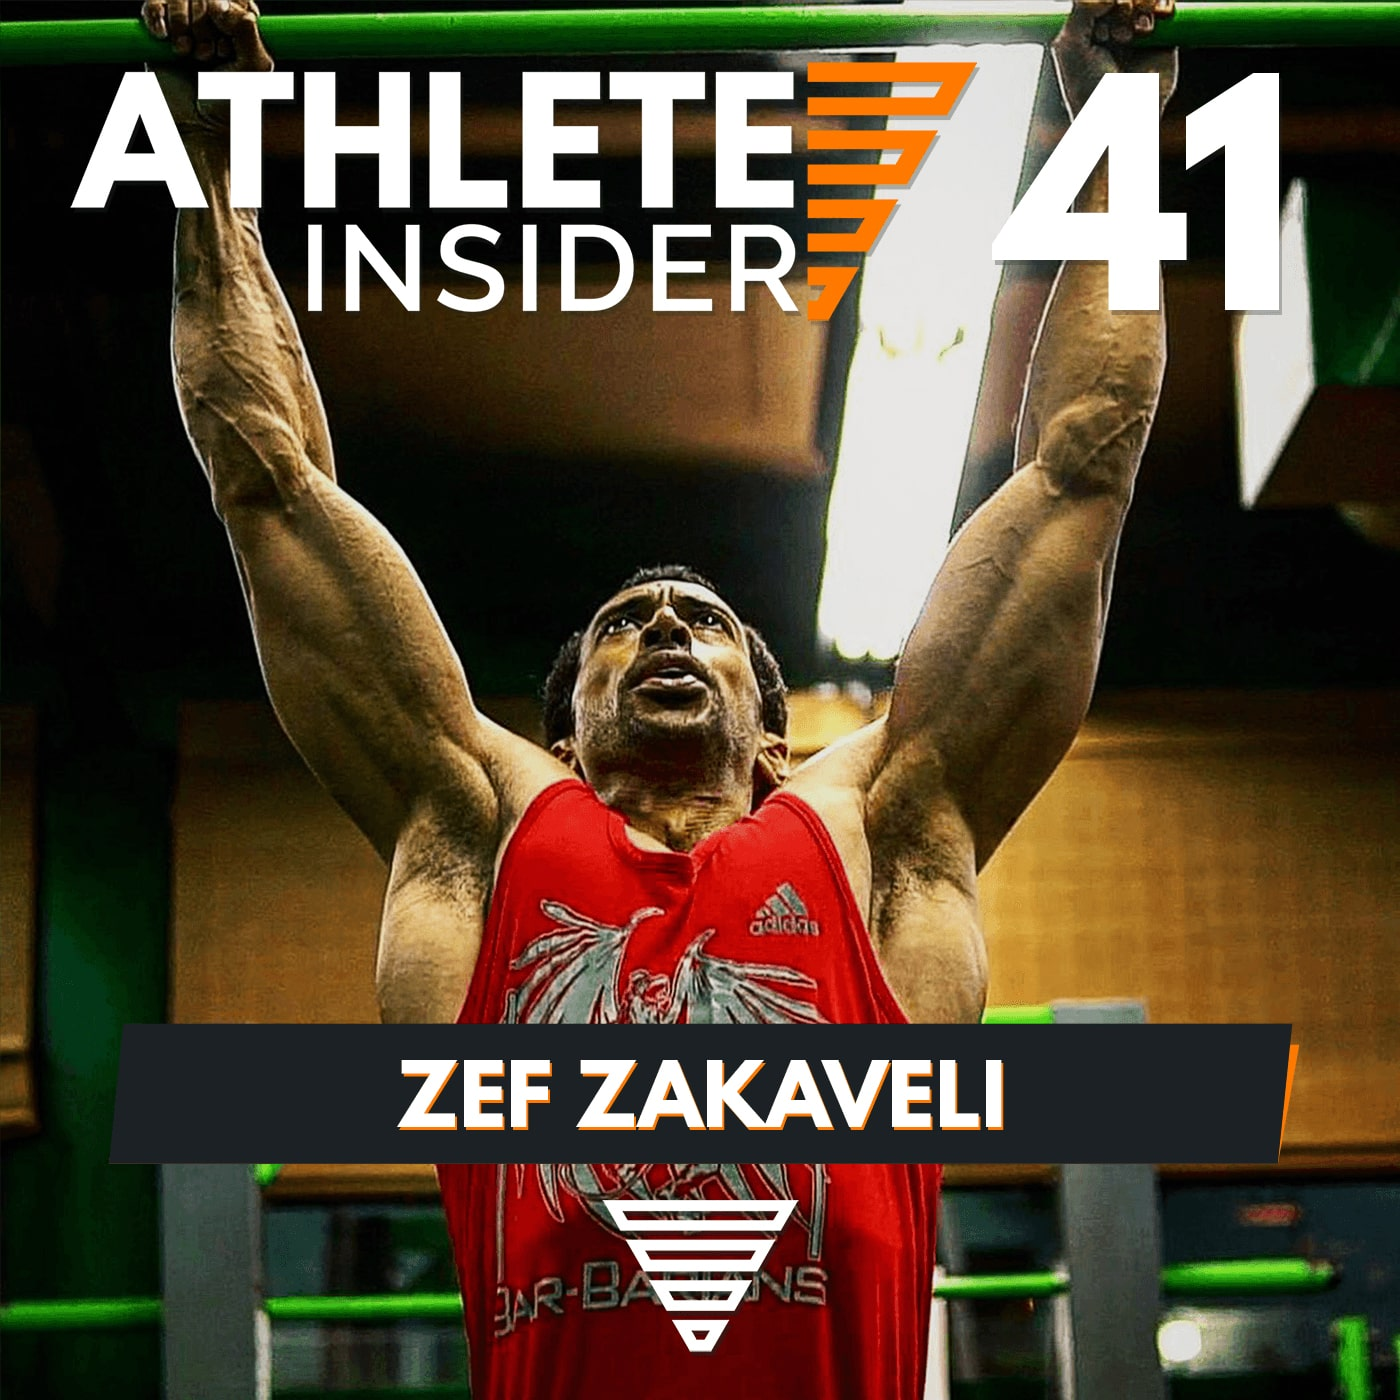 ZEF ZAKAVELI | Workout Schedule, Mindset & Injuries | Interview | The Athlete Insider Podcast #41